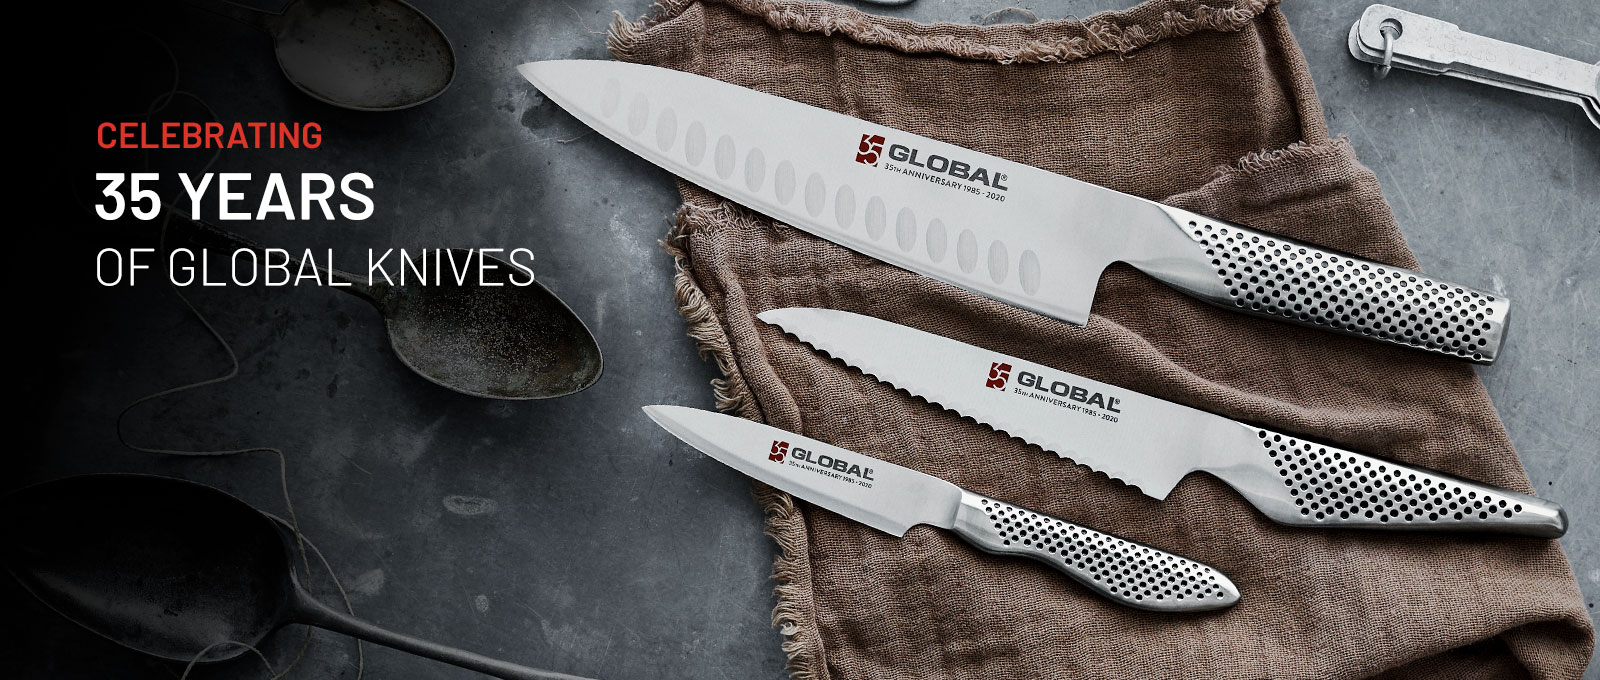 Celebrating 35 years of Global Knives